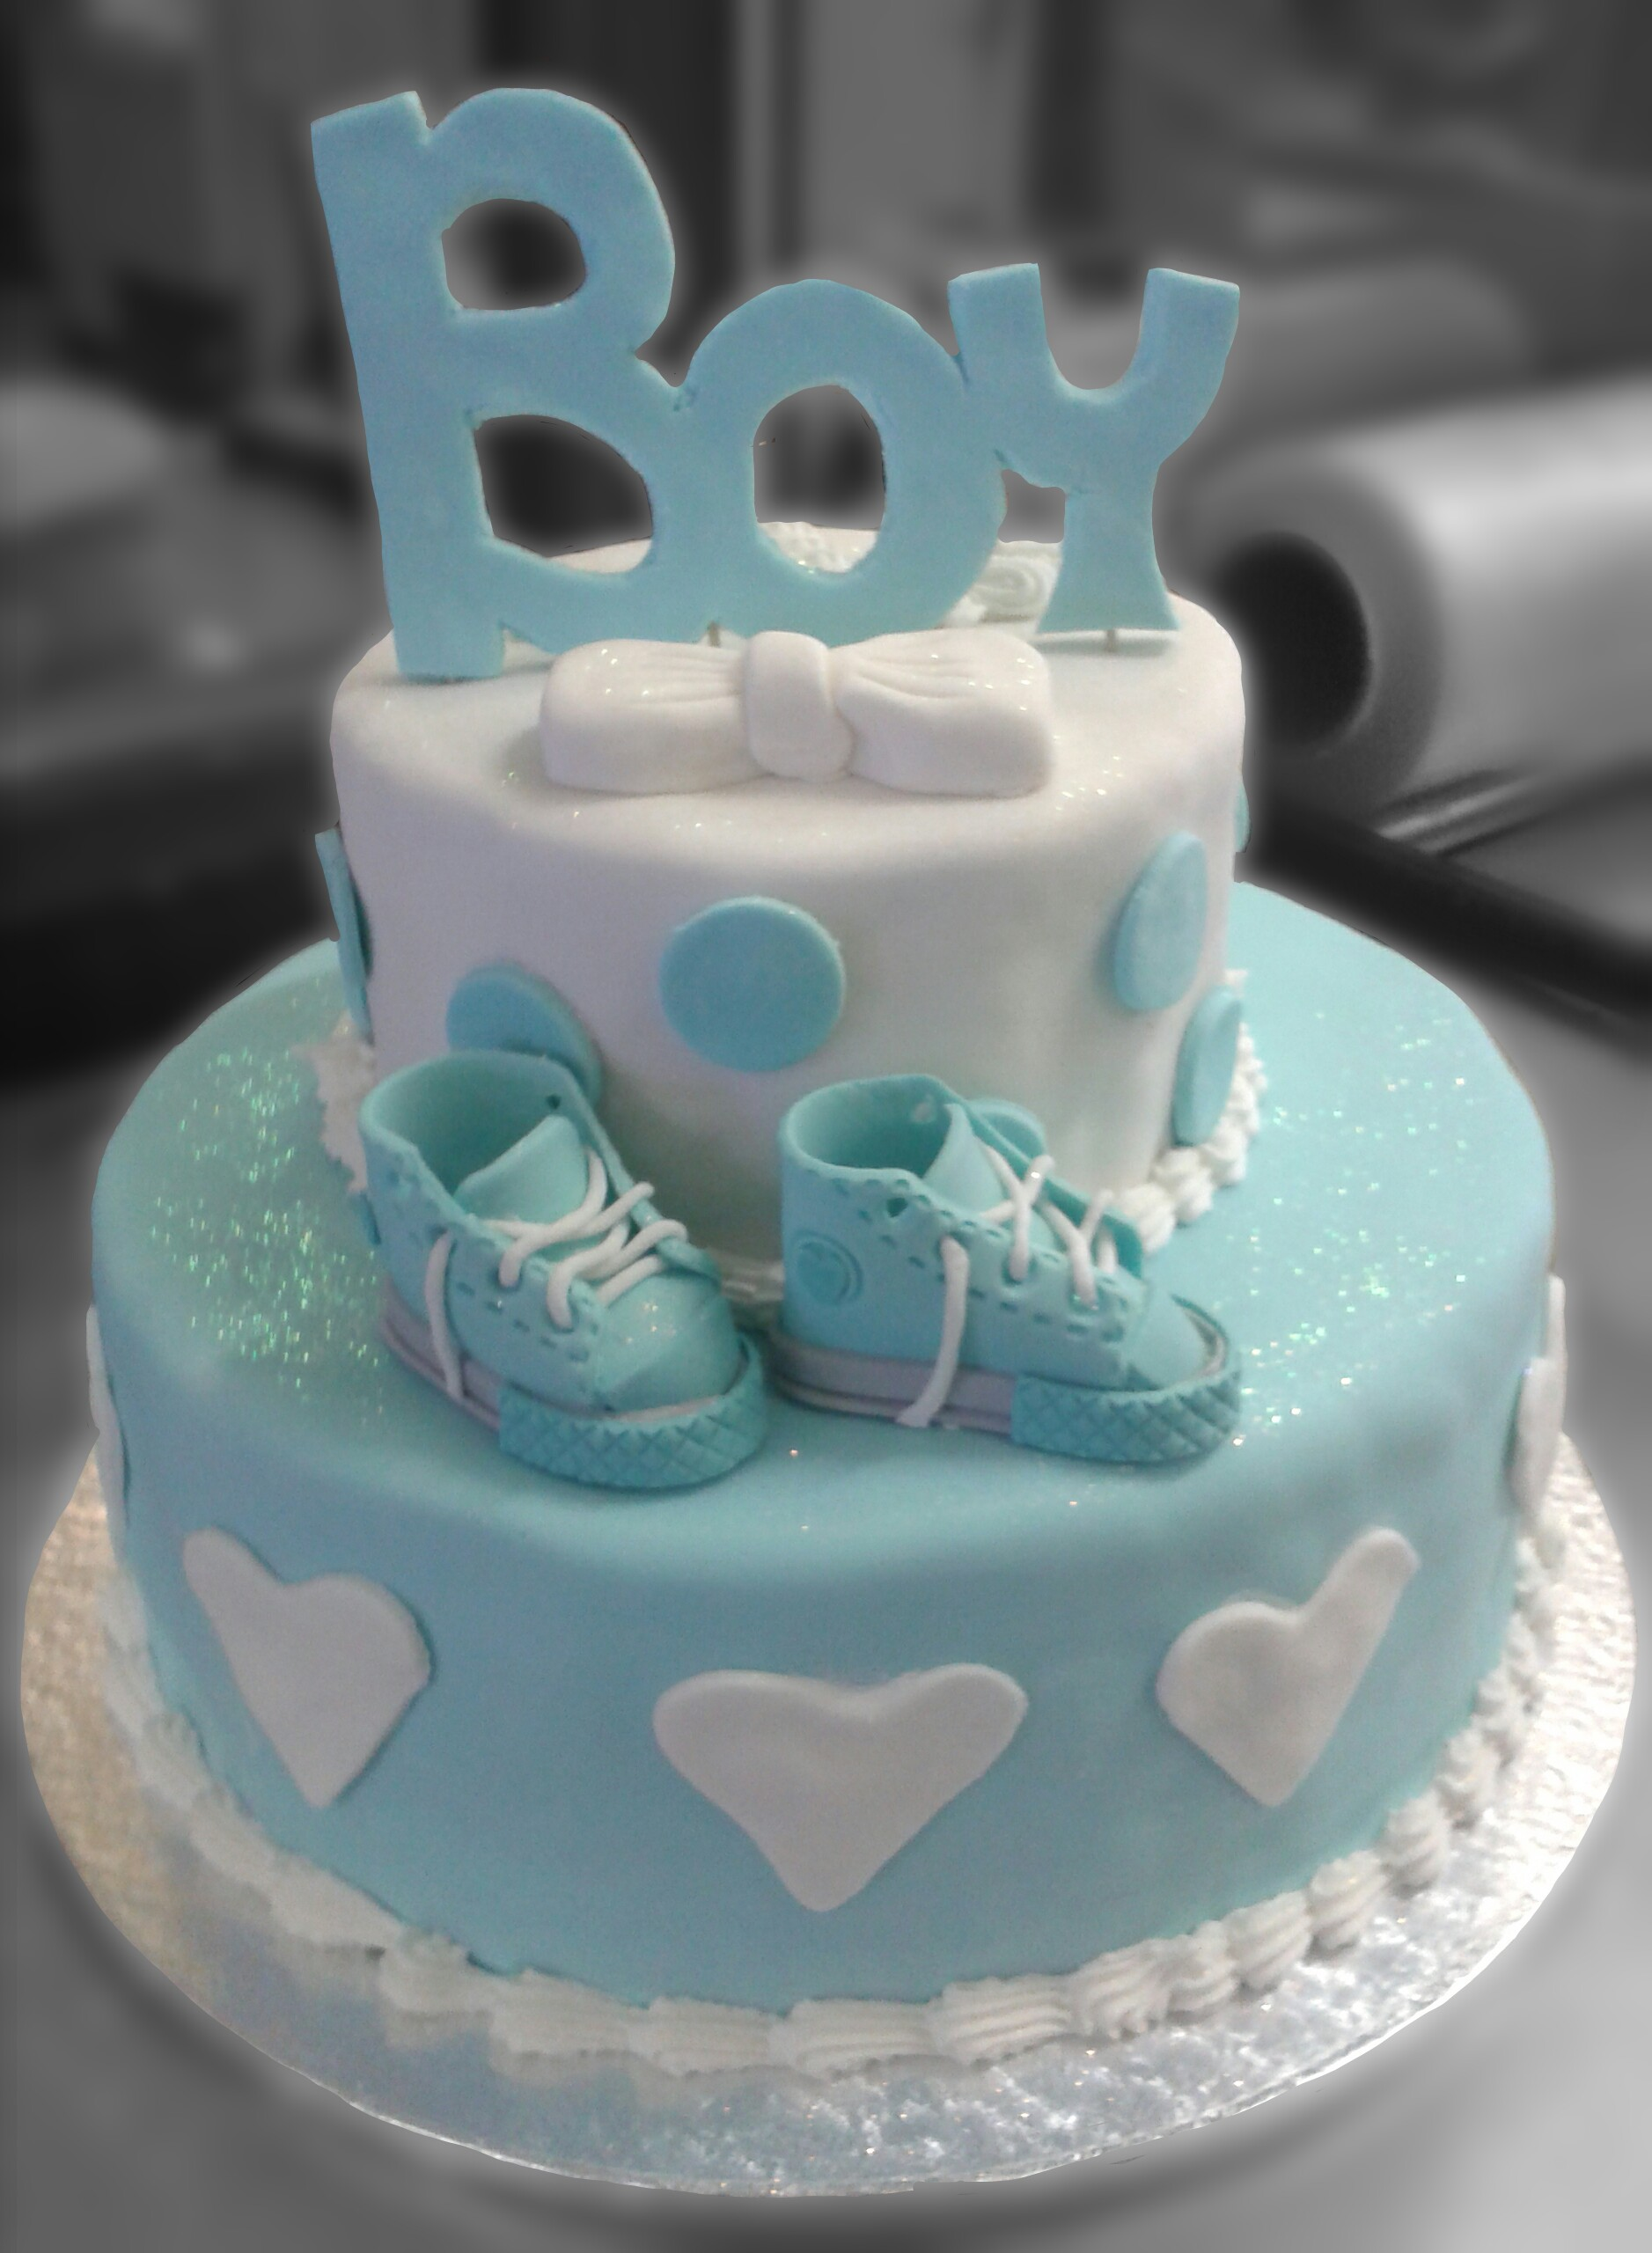 Cute Baby Shower Cakes For A Boy www.imgkid.com - The ...